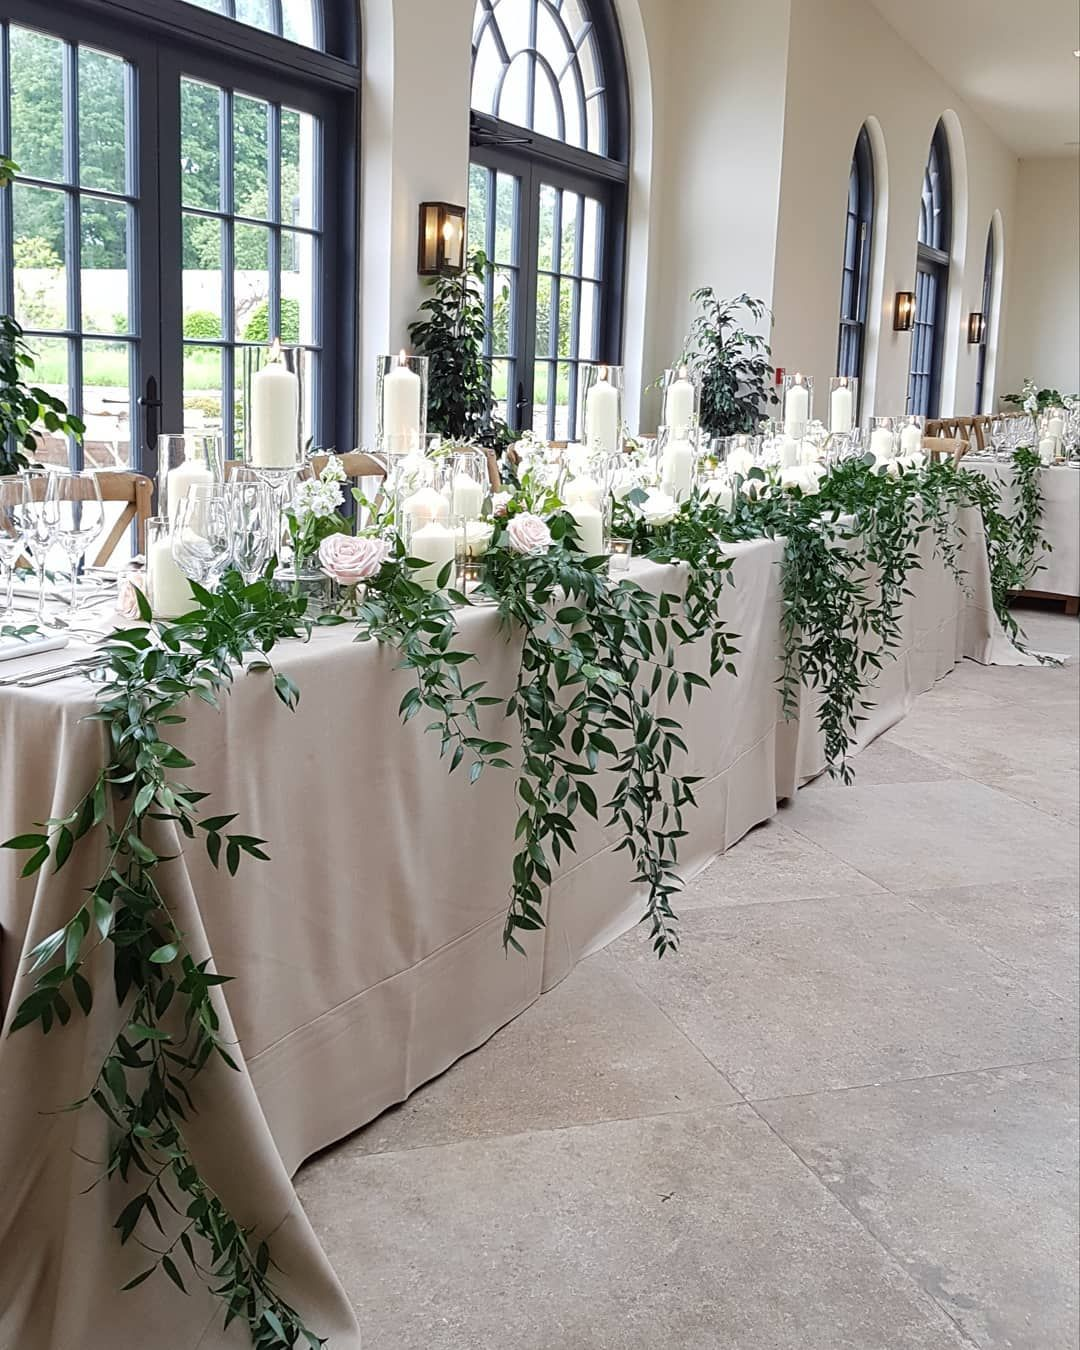 Wedding Events Floral Design On Instagram Top Table Venue The Fig House Middle Wedding Top Table Decorations Wedding Bridal Table Wedding Top Table